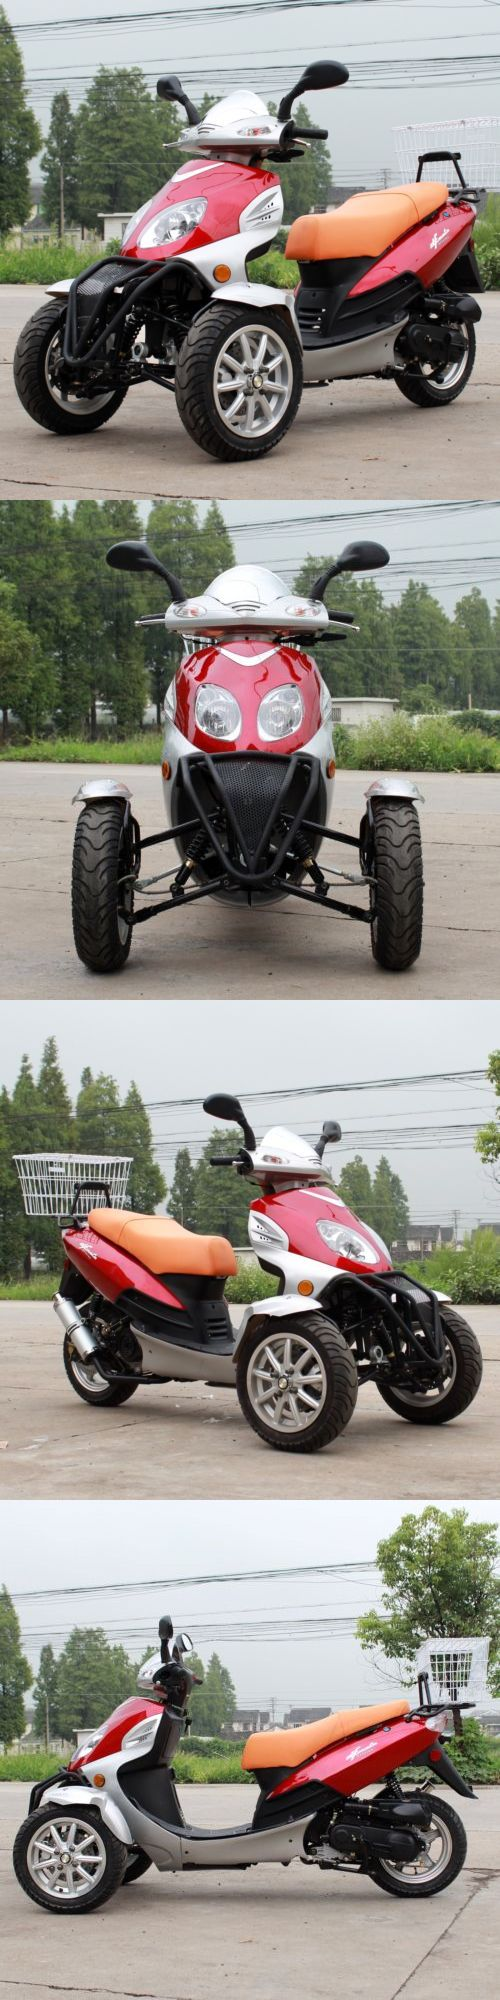 Other Cycling 2904: New Yd 49Cc Trike Bike Gas Moped Scooter 3 Wheels With Rear Carrier Red BUY IT NOW ONLY: $1614.99